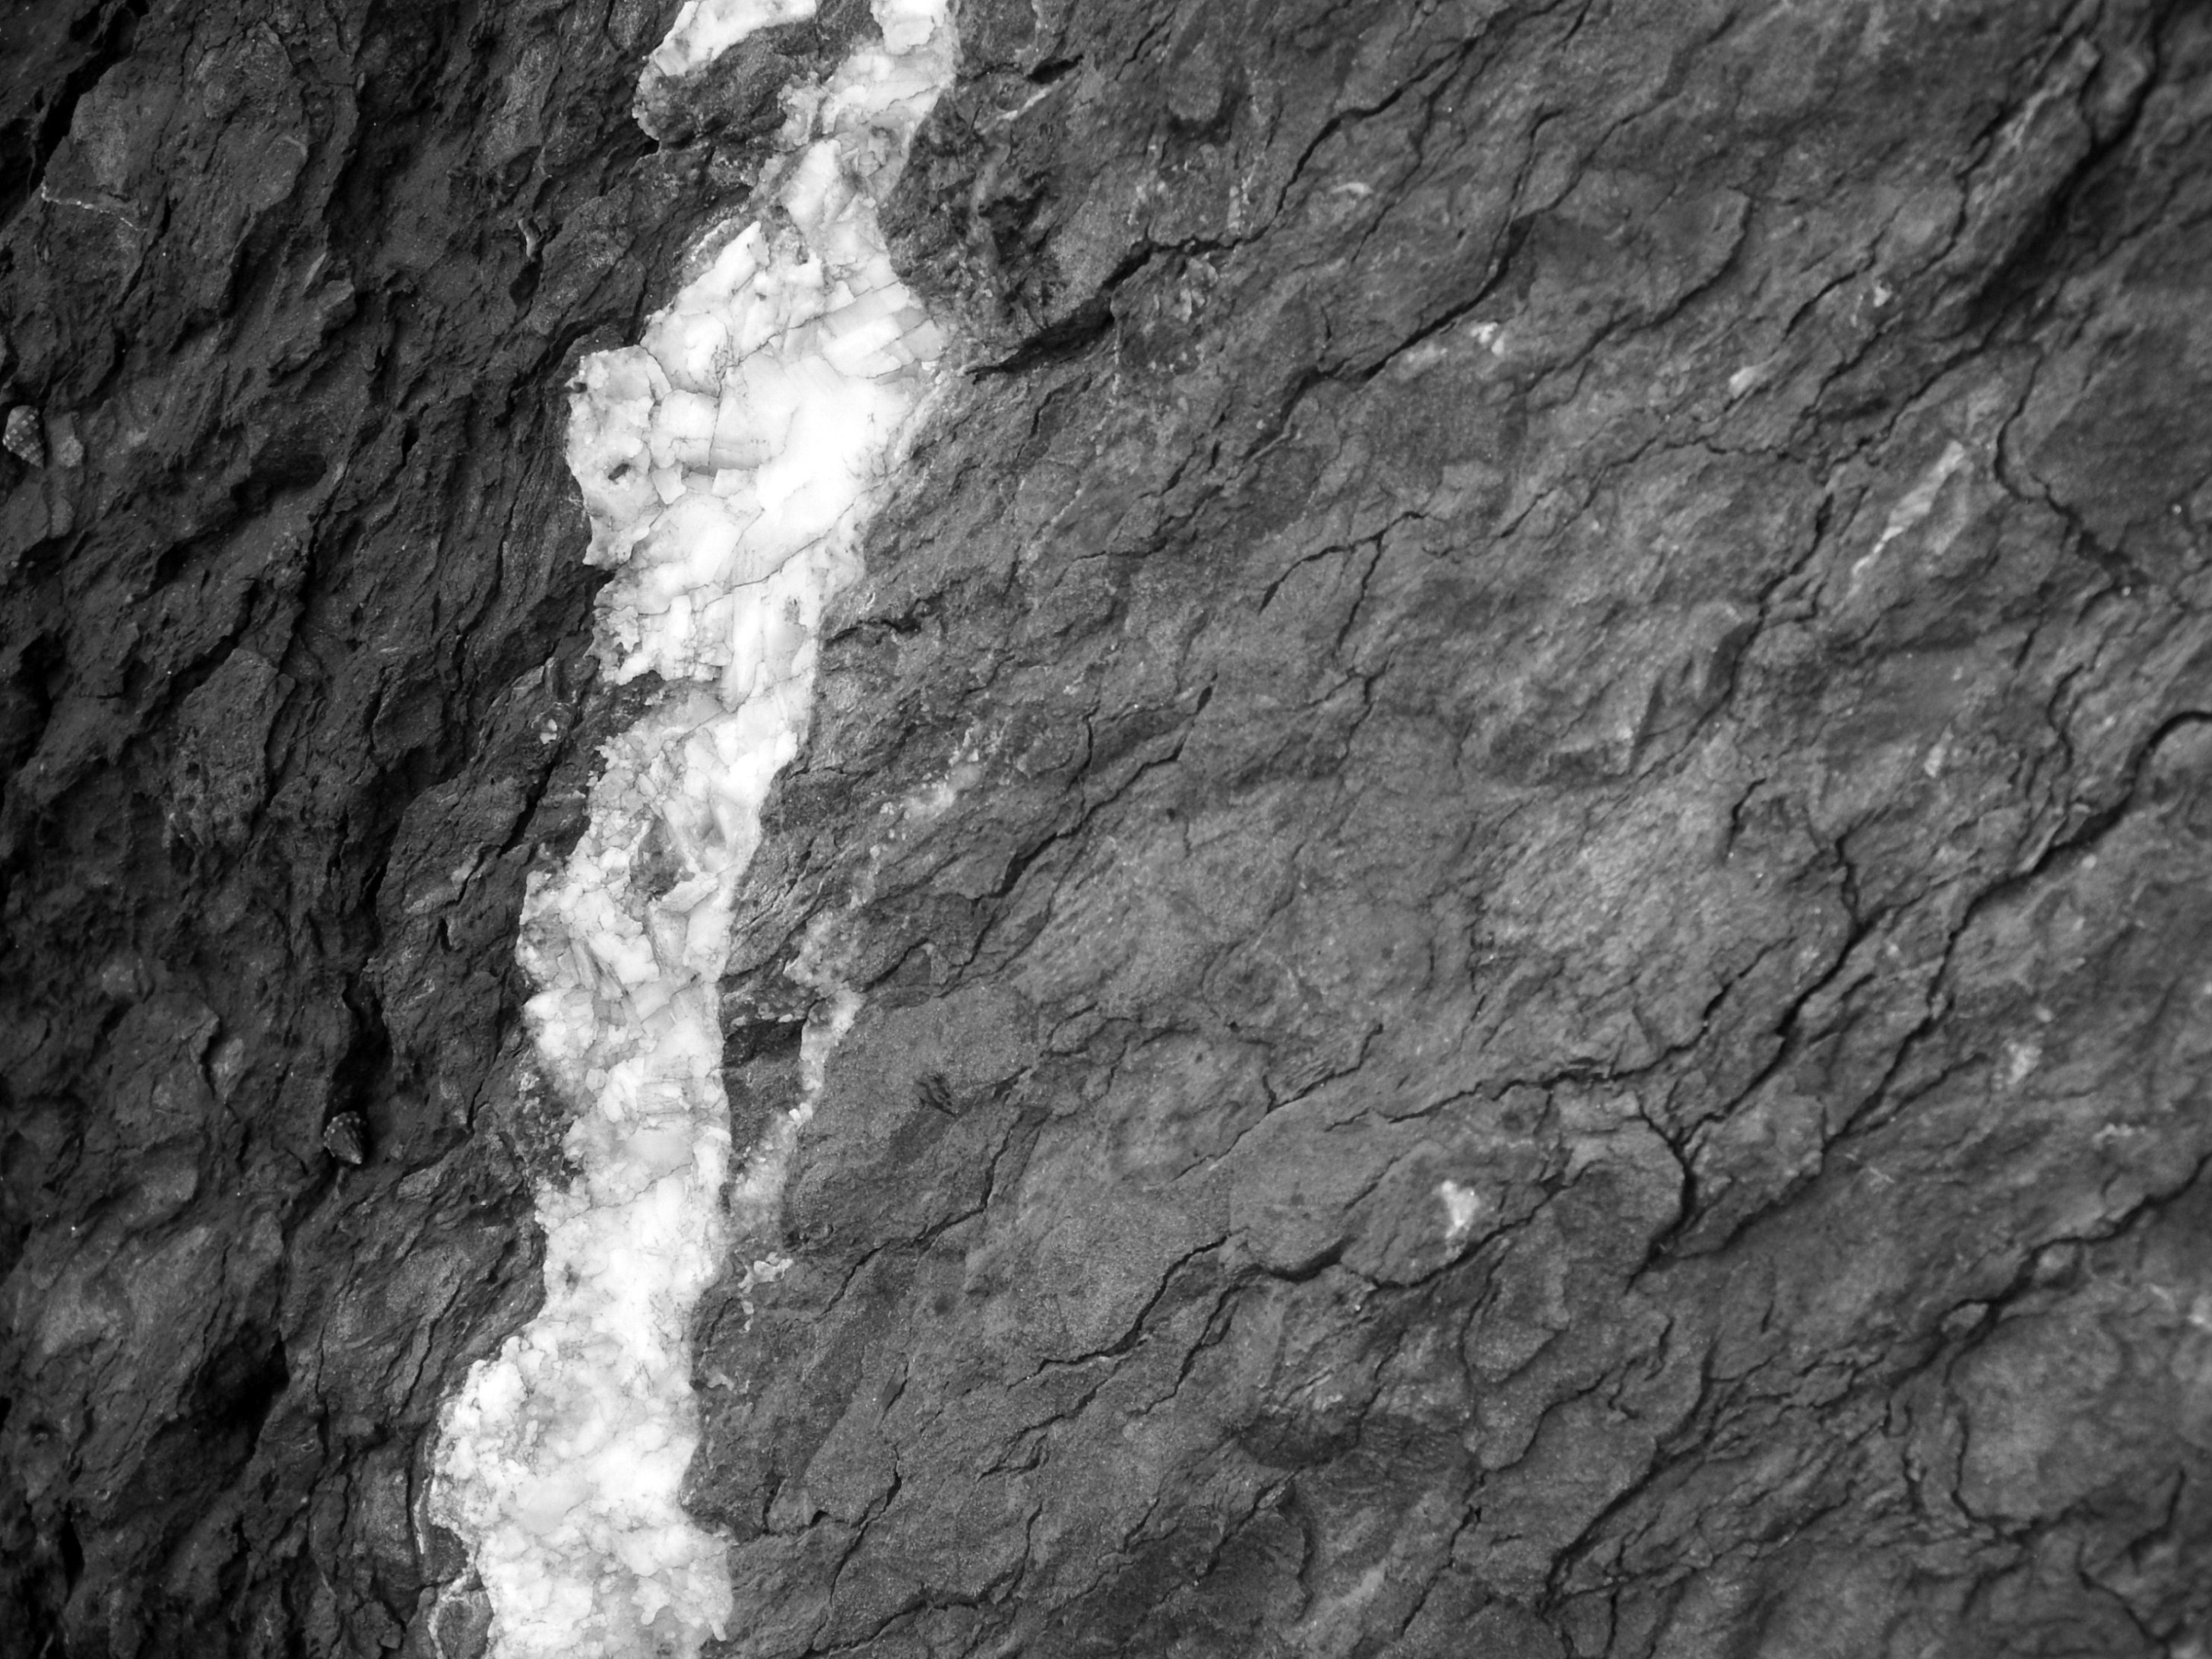 Black and white rock texture photo